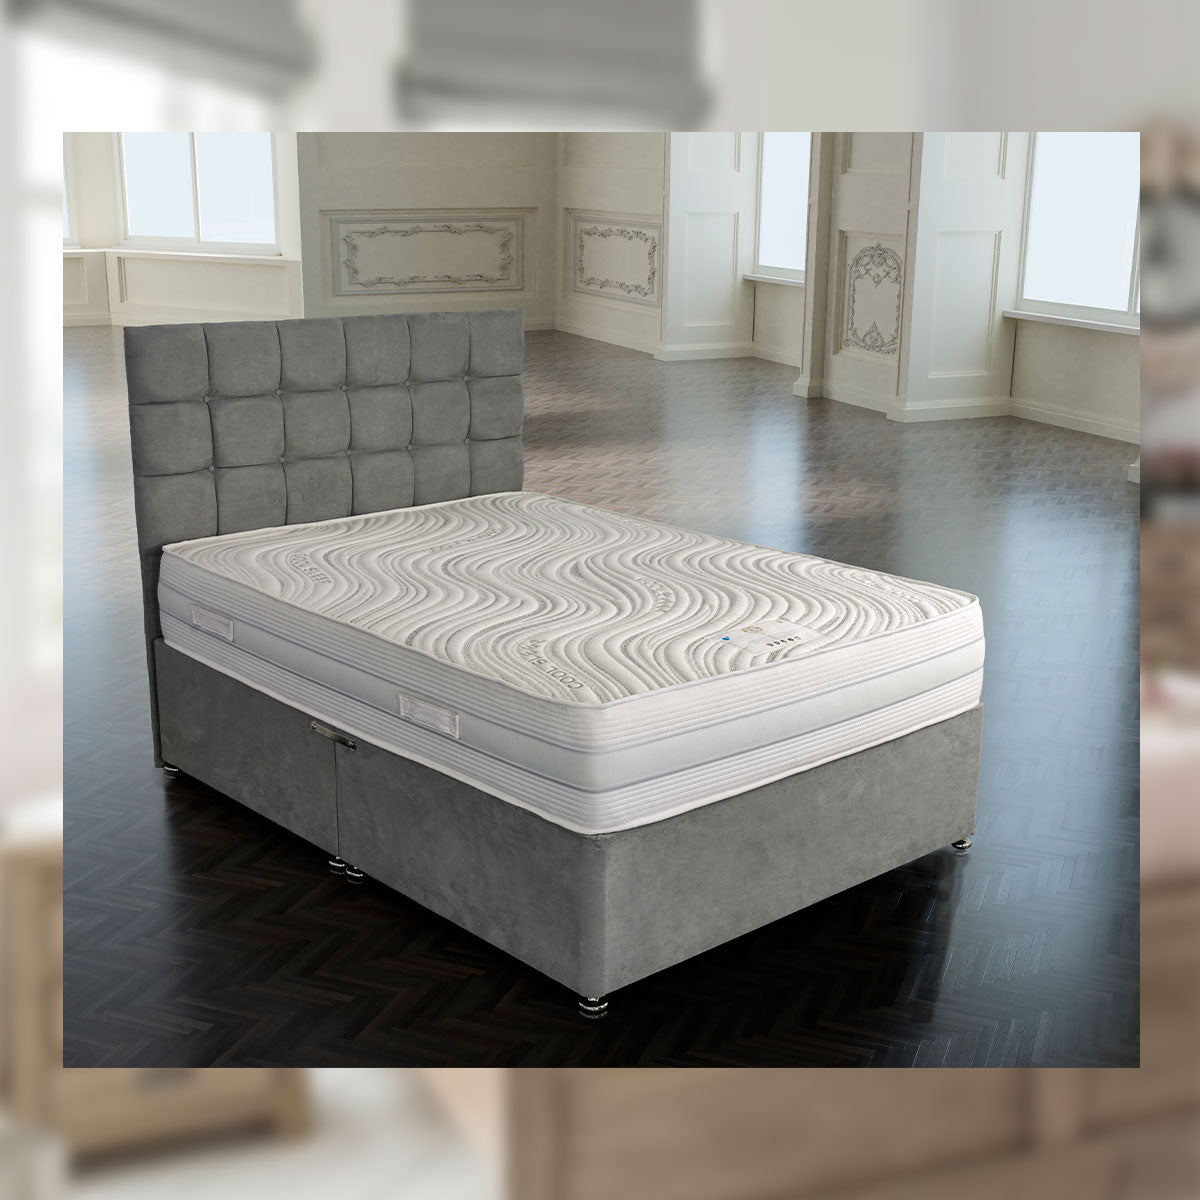 Kensington 2000 Pocket Gel Encapsulated Mattress Available In Medium Medium Firm Or Firm Comfort